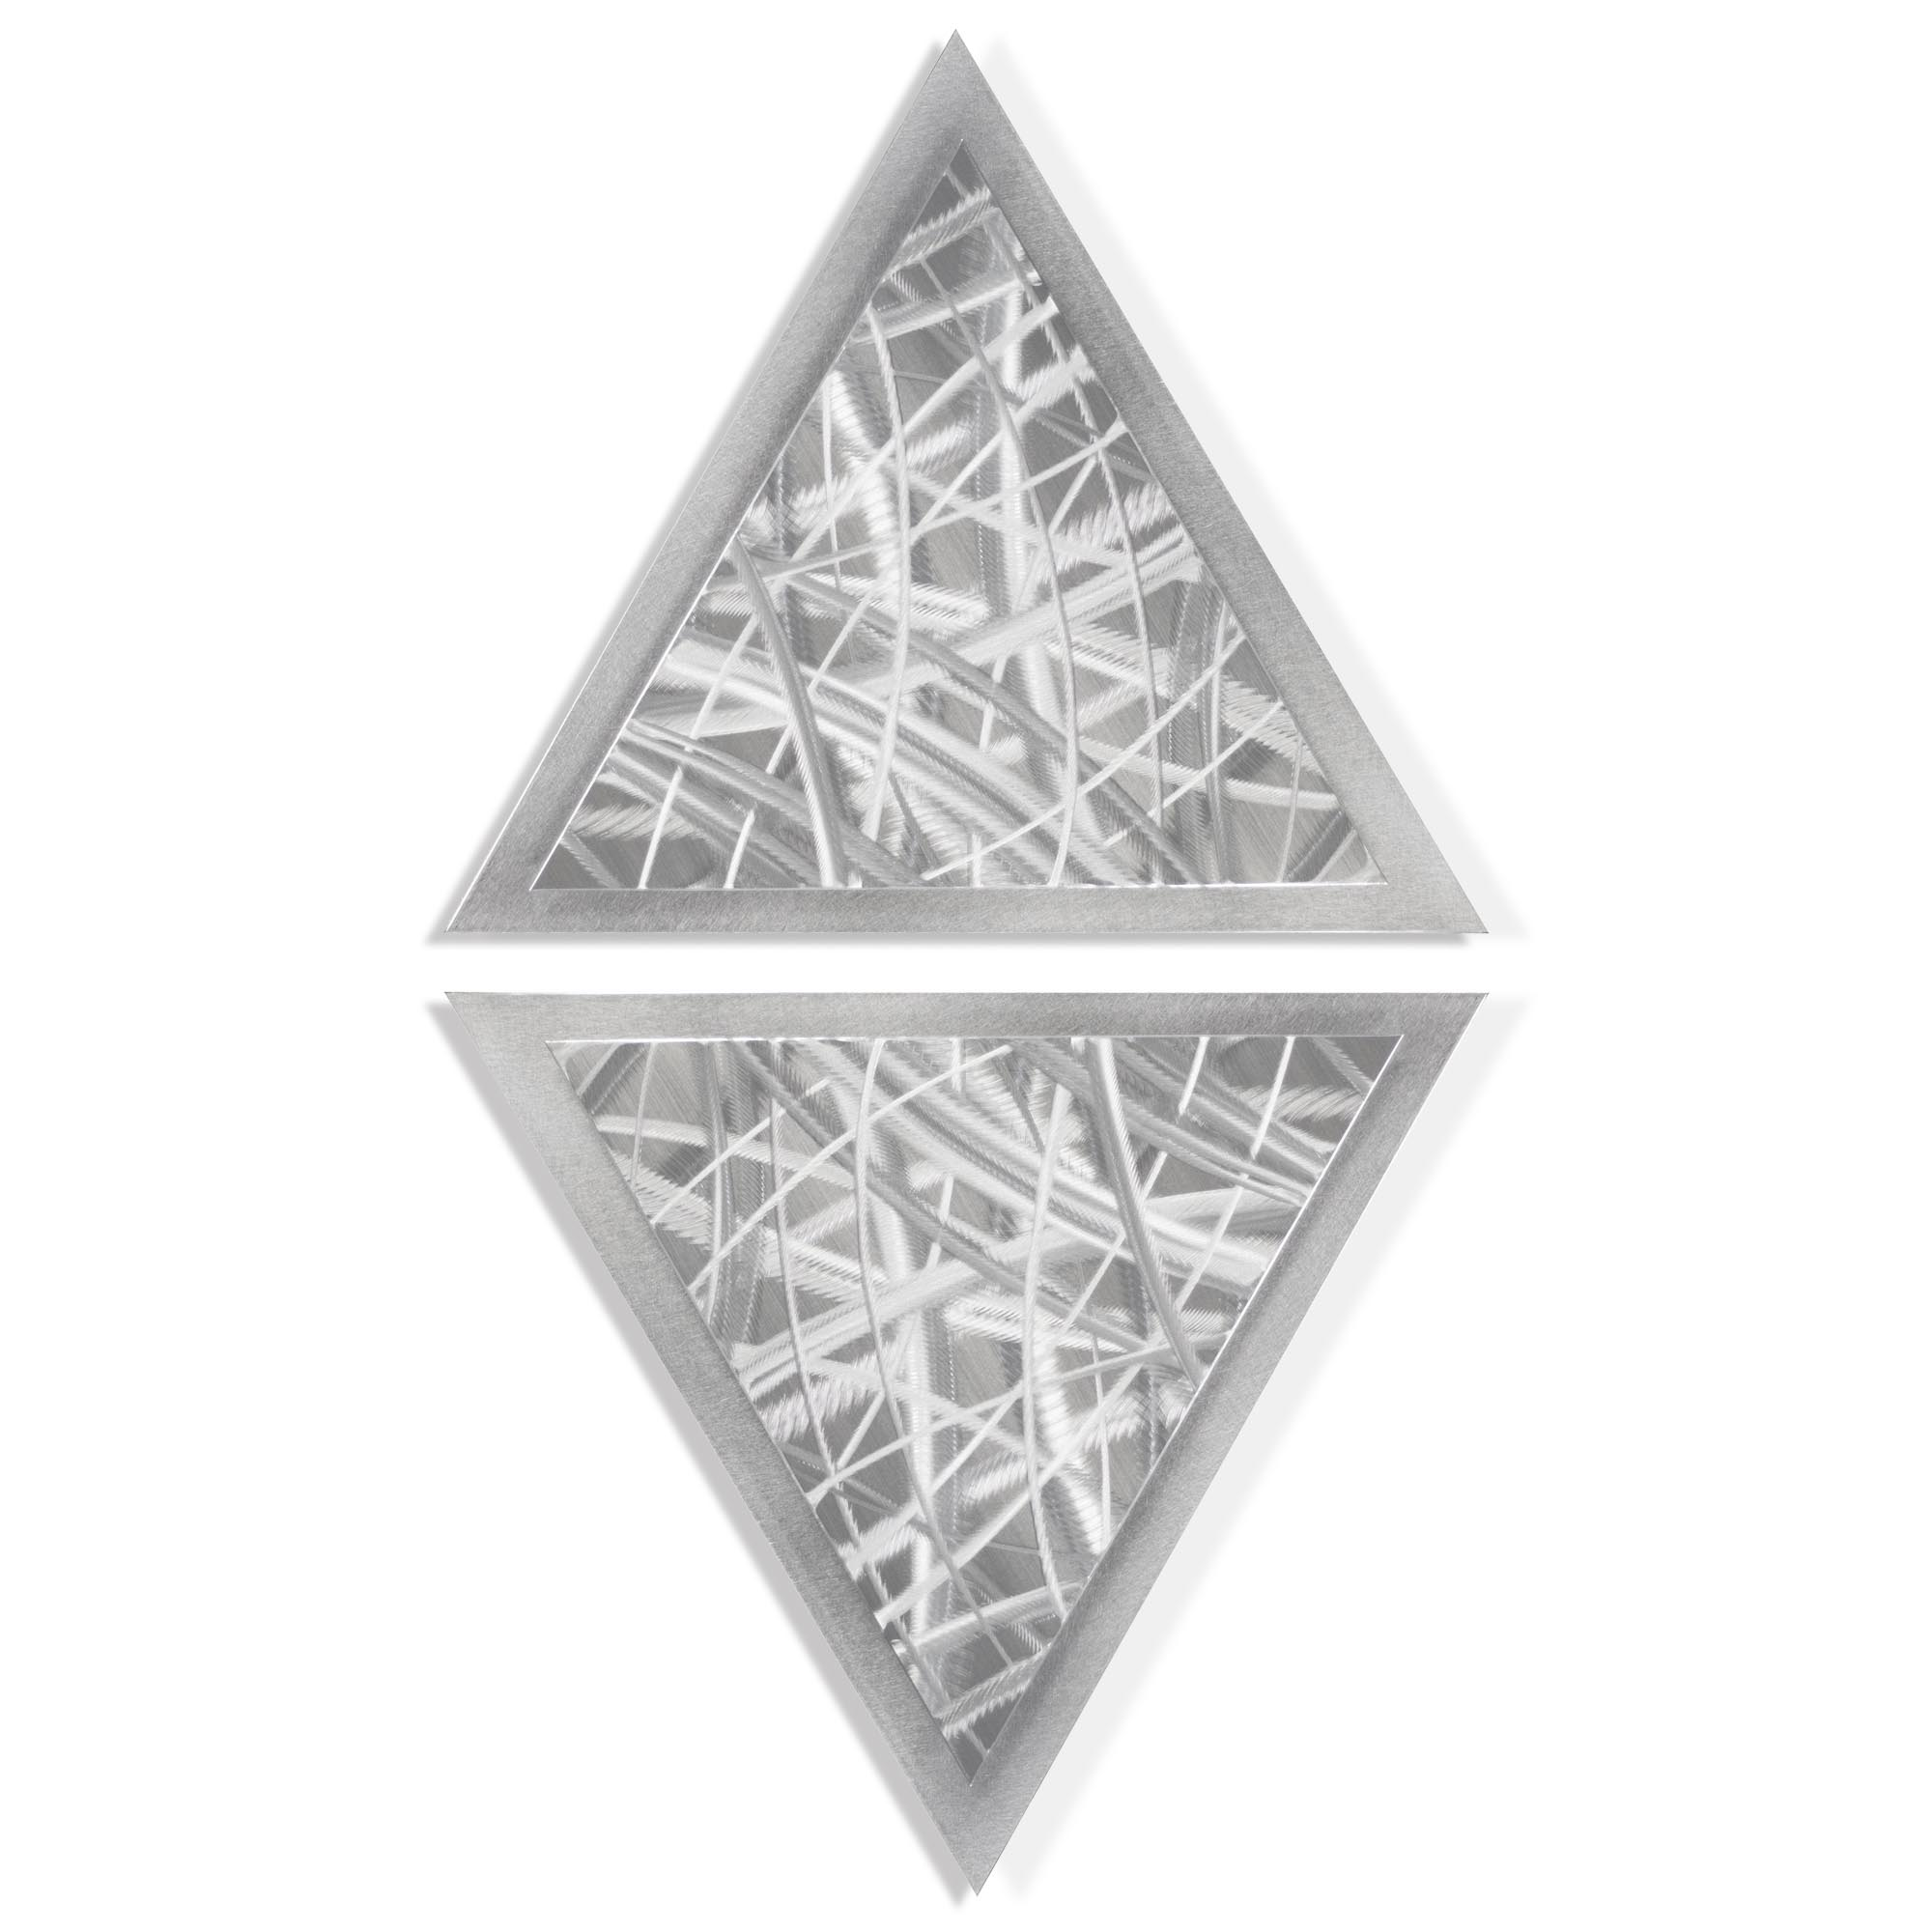 Helena Martin 'Thatched Diamond' 15in x 28in Modern Metal Art on Ground Metal